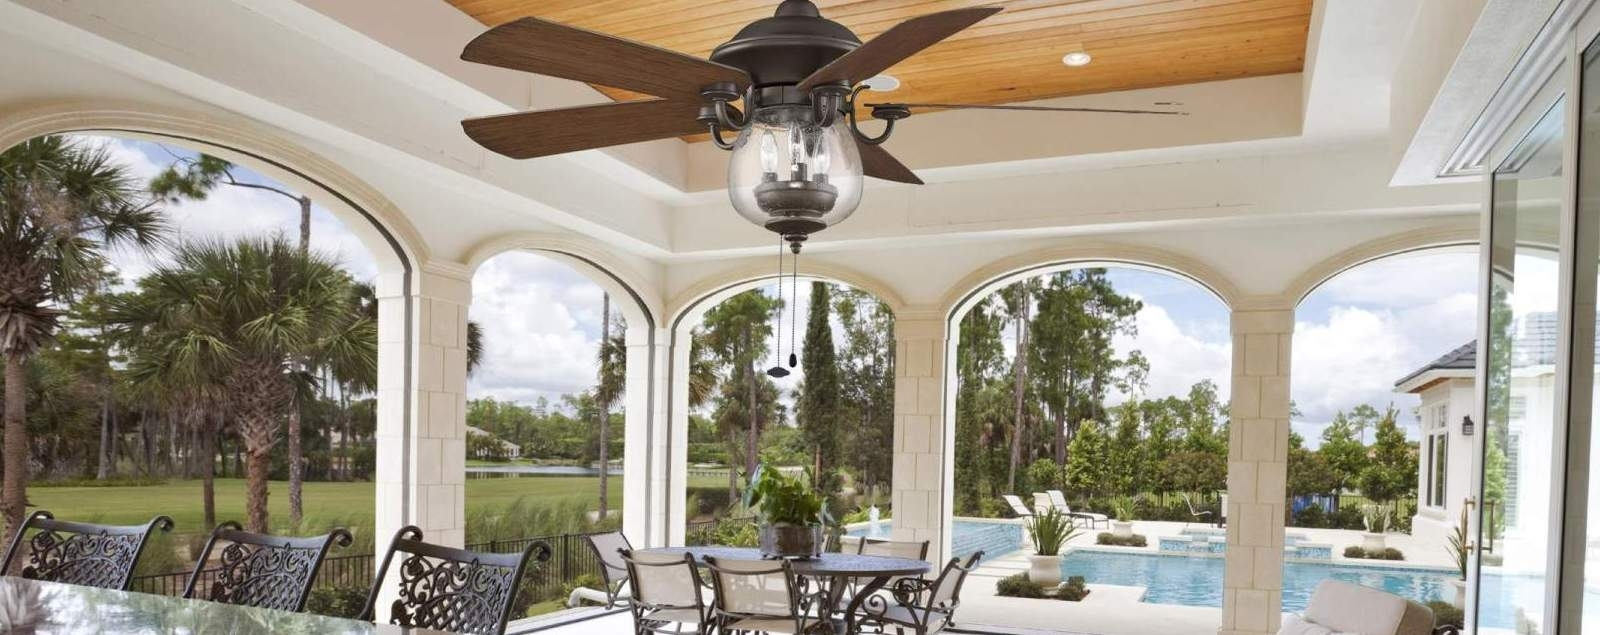 2018 High Output Outdoor Ceiling Fans Throughout Outdoor Ceiling Fans – Shop Wet, Dry, And Damp Rated Outdoor Fans (View 12 of 20)